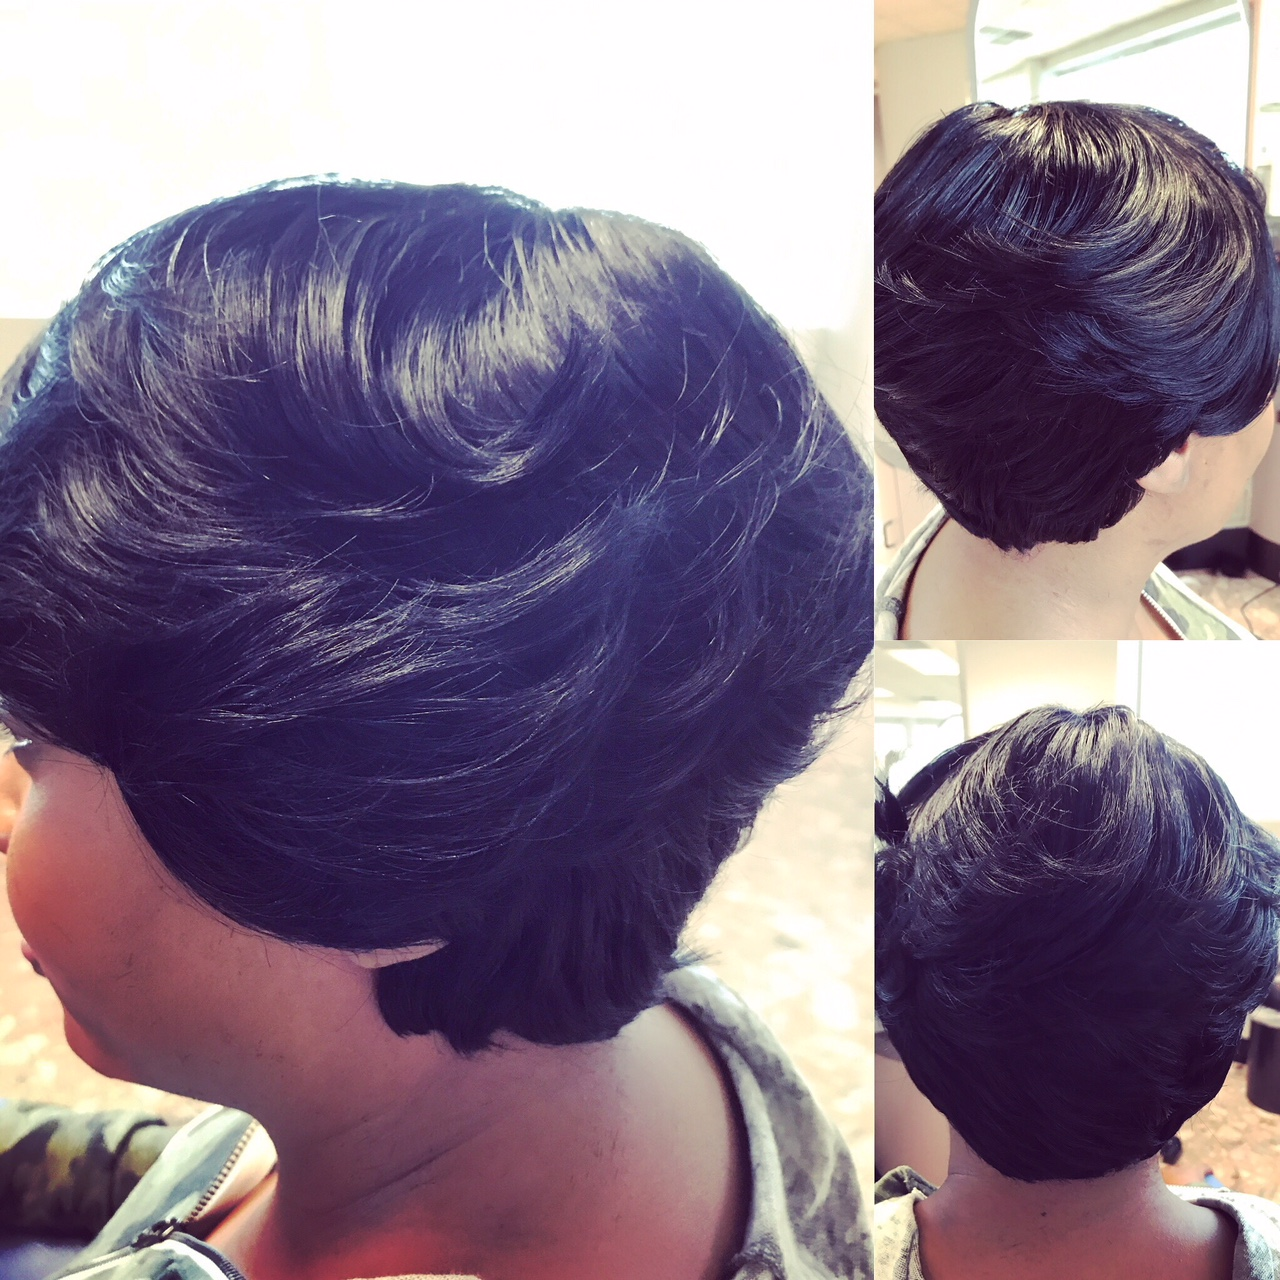 Express Weave & Style